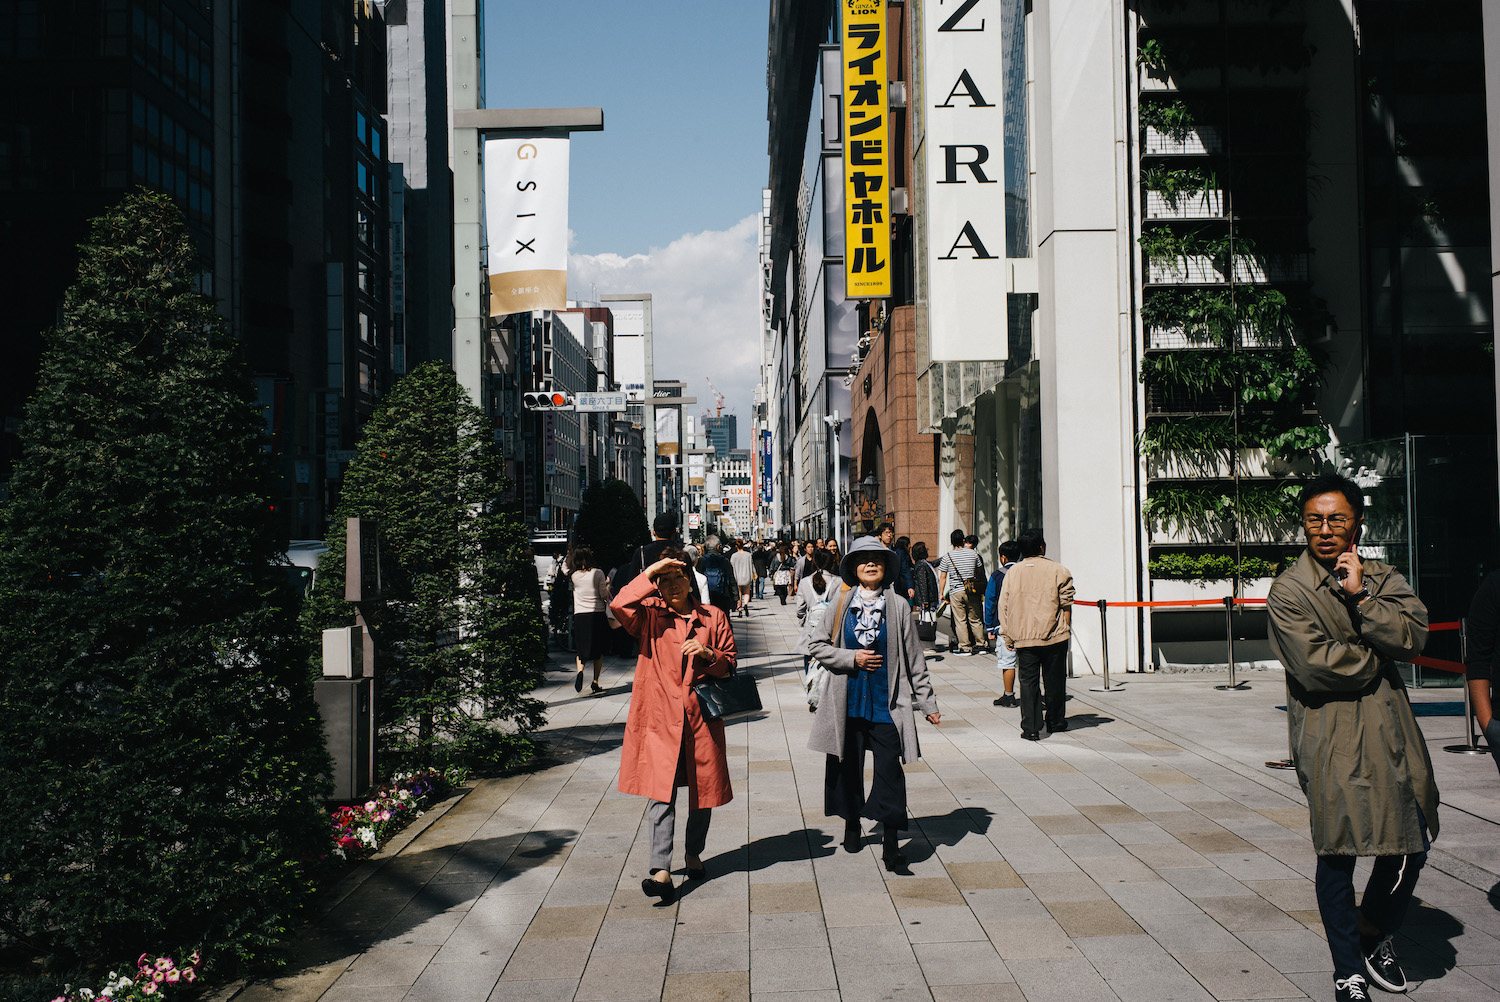 Ginza reminds me of Oxford Street in London, probably for a reason.